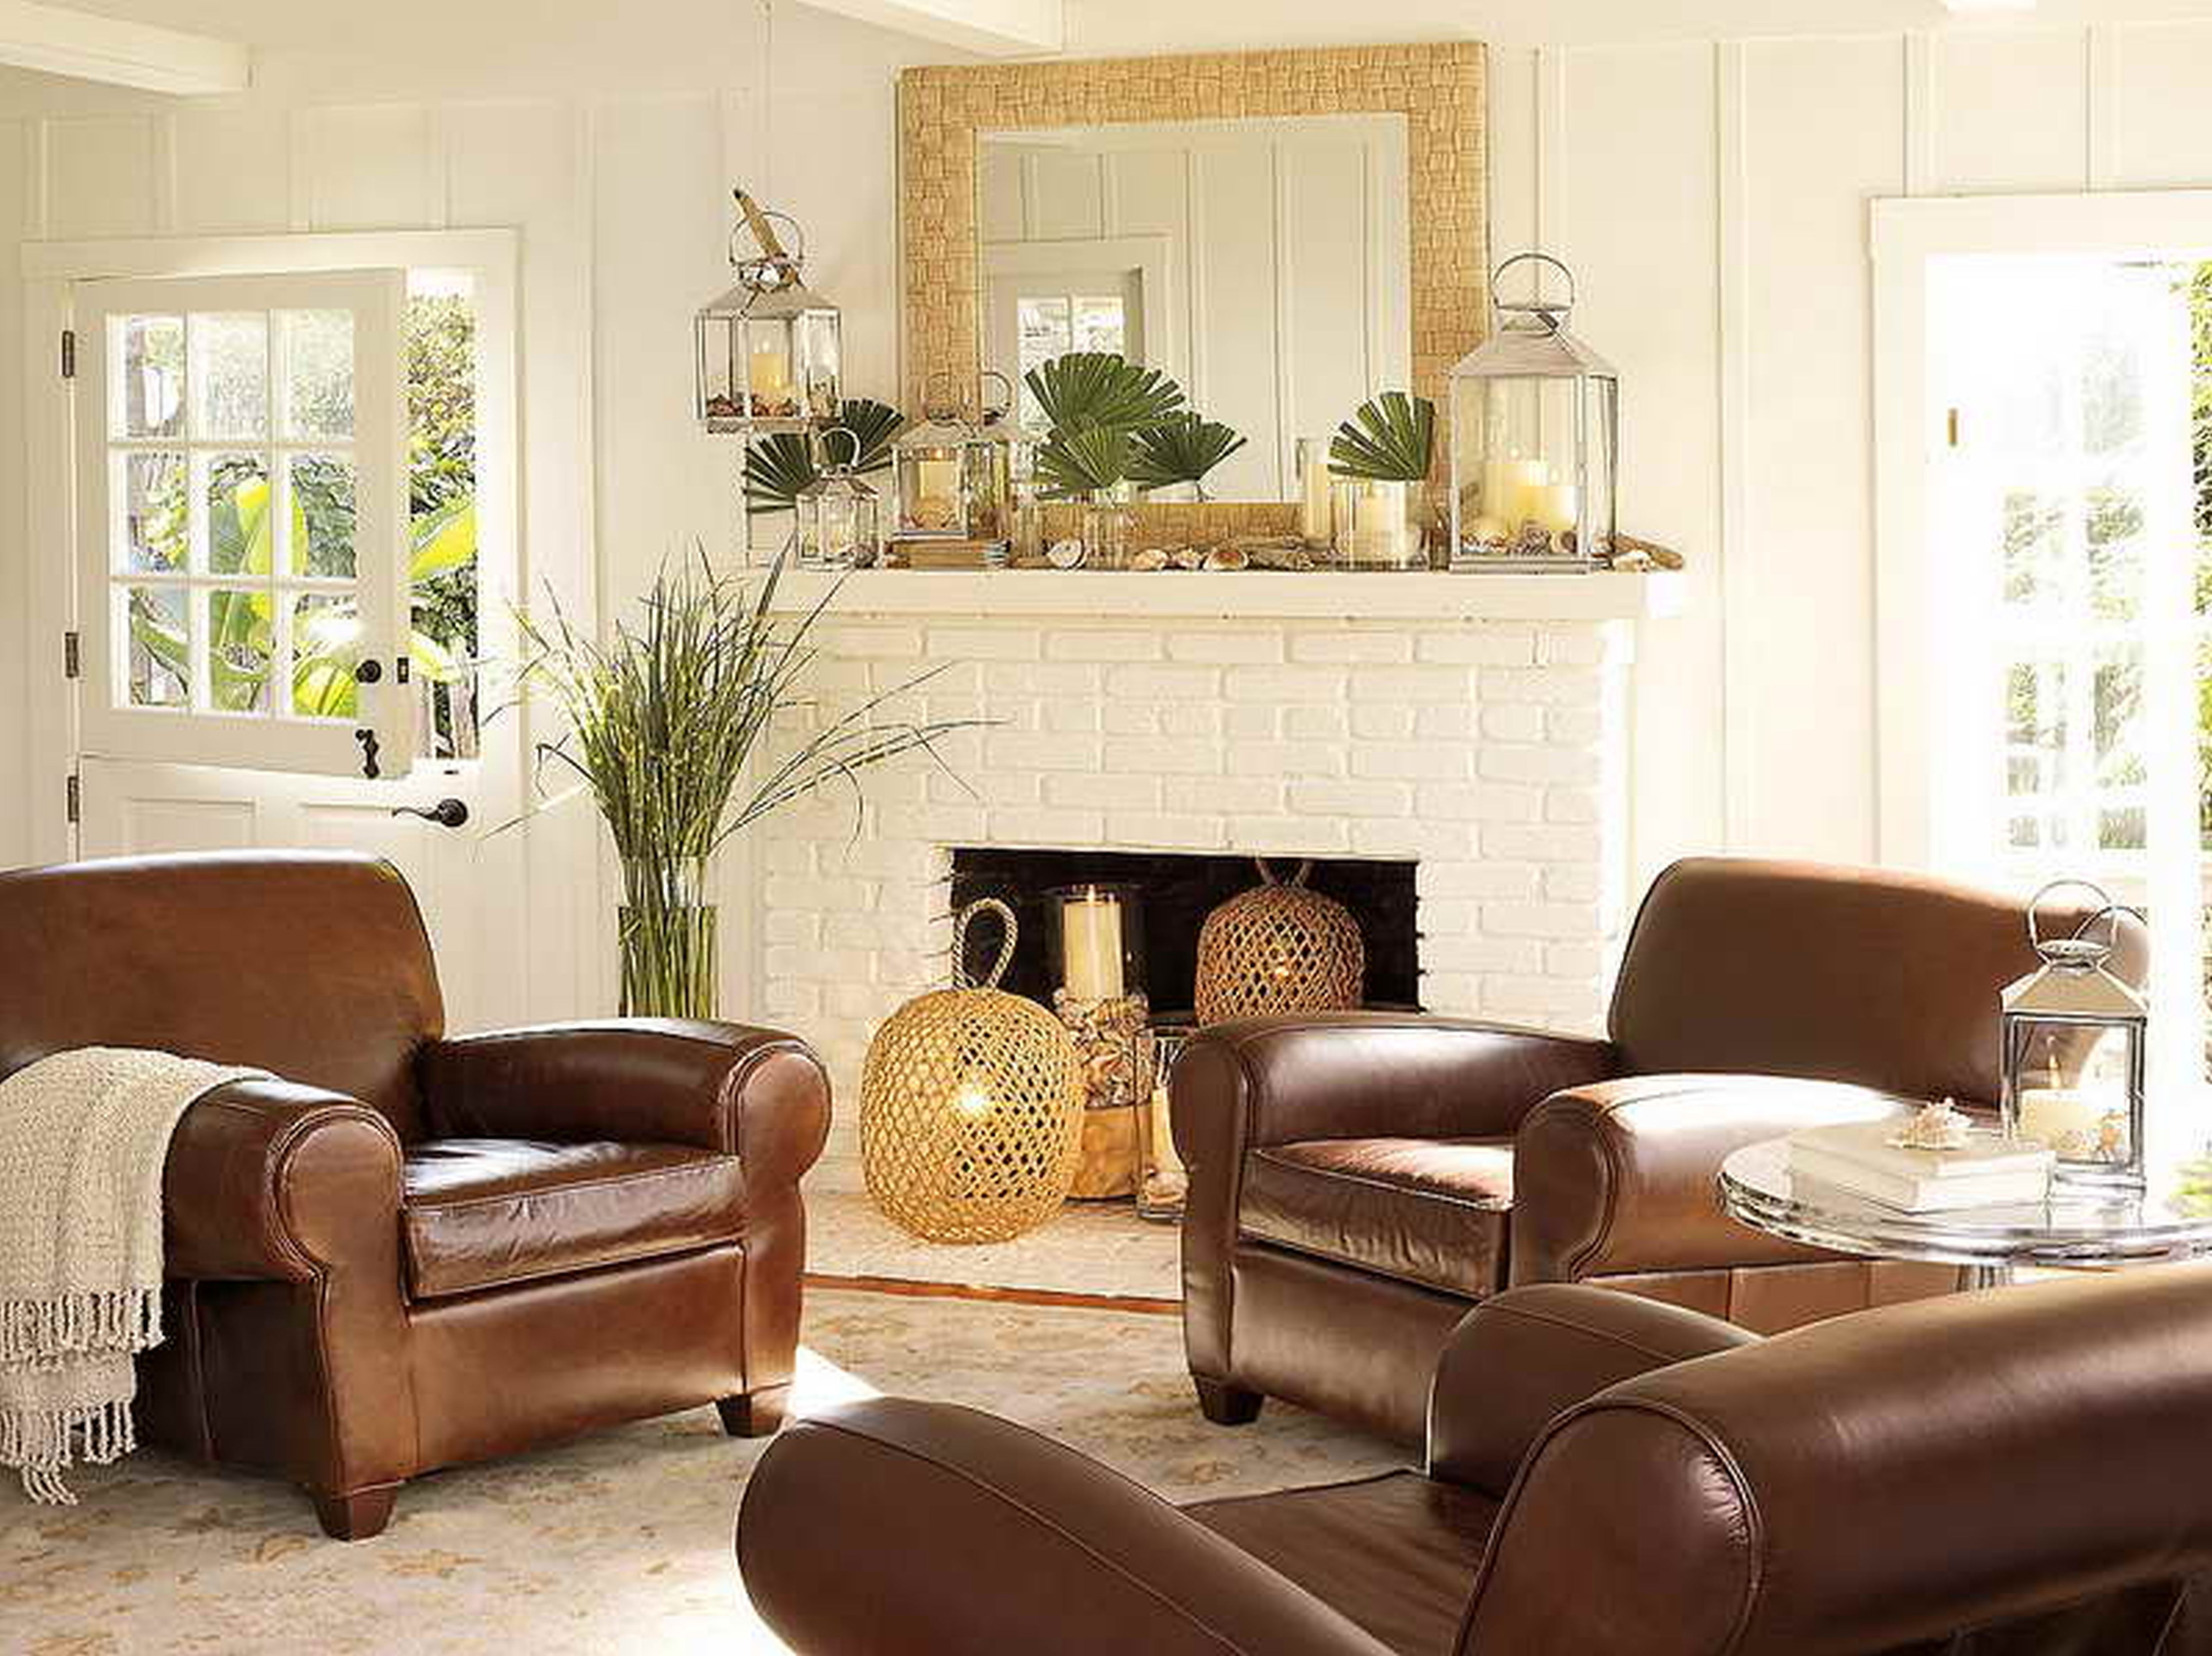 living room design ideas with leather sofa living room pinterest rh pinterest nz Living Room Decorating Ideas with Sofa Brown Brown Leather Sofa with Modern Living Room Ideas